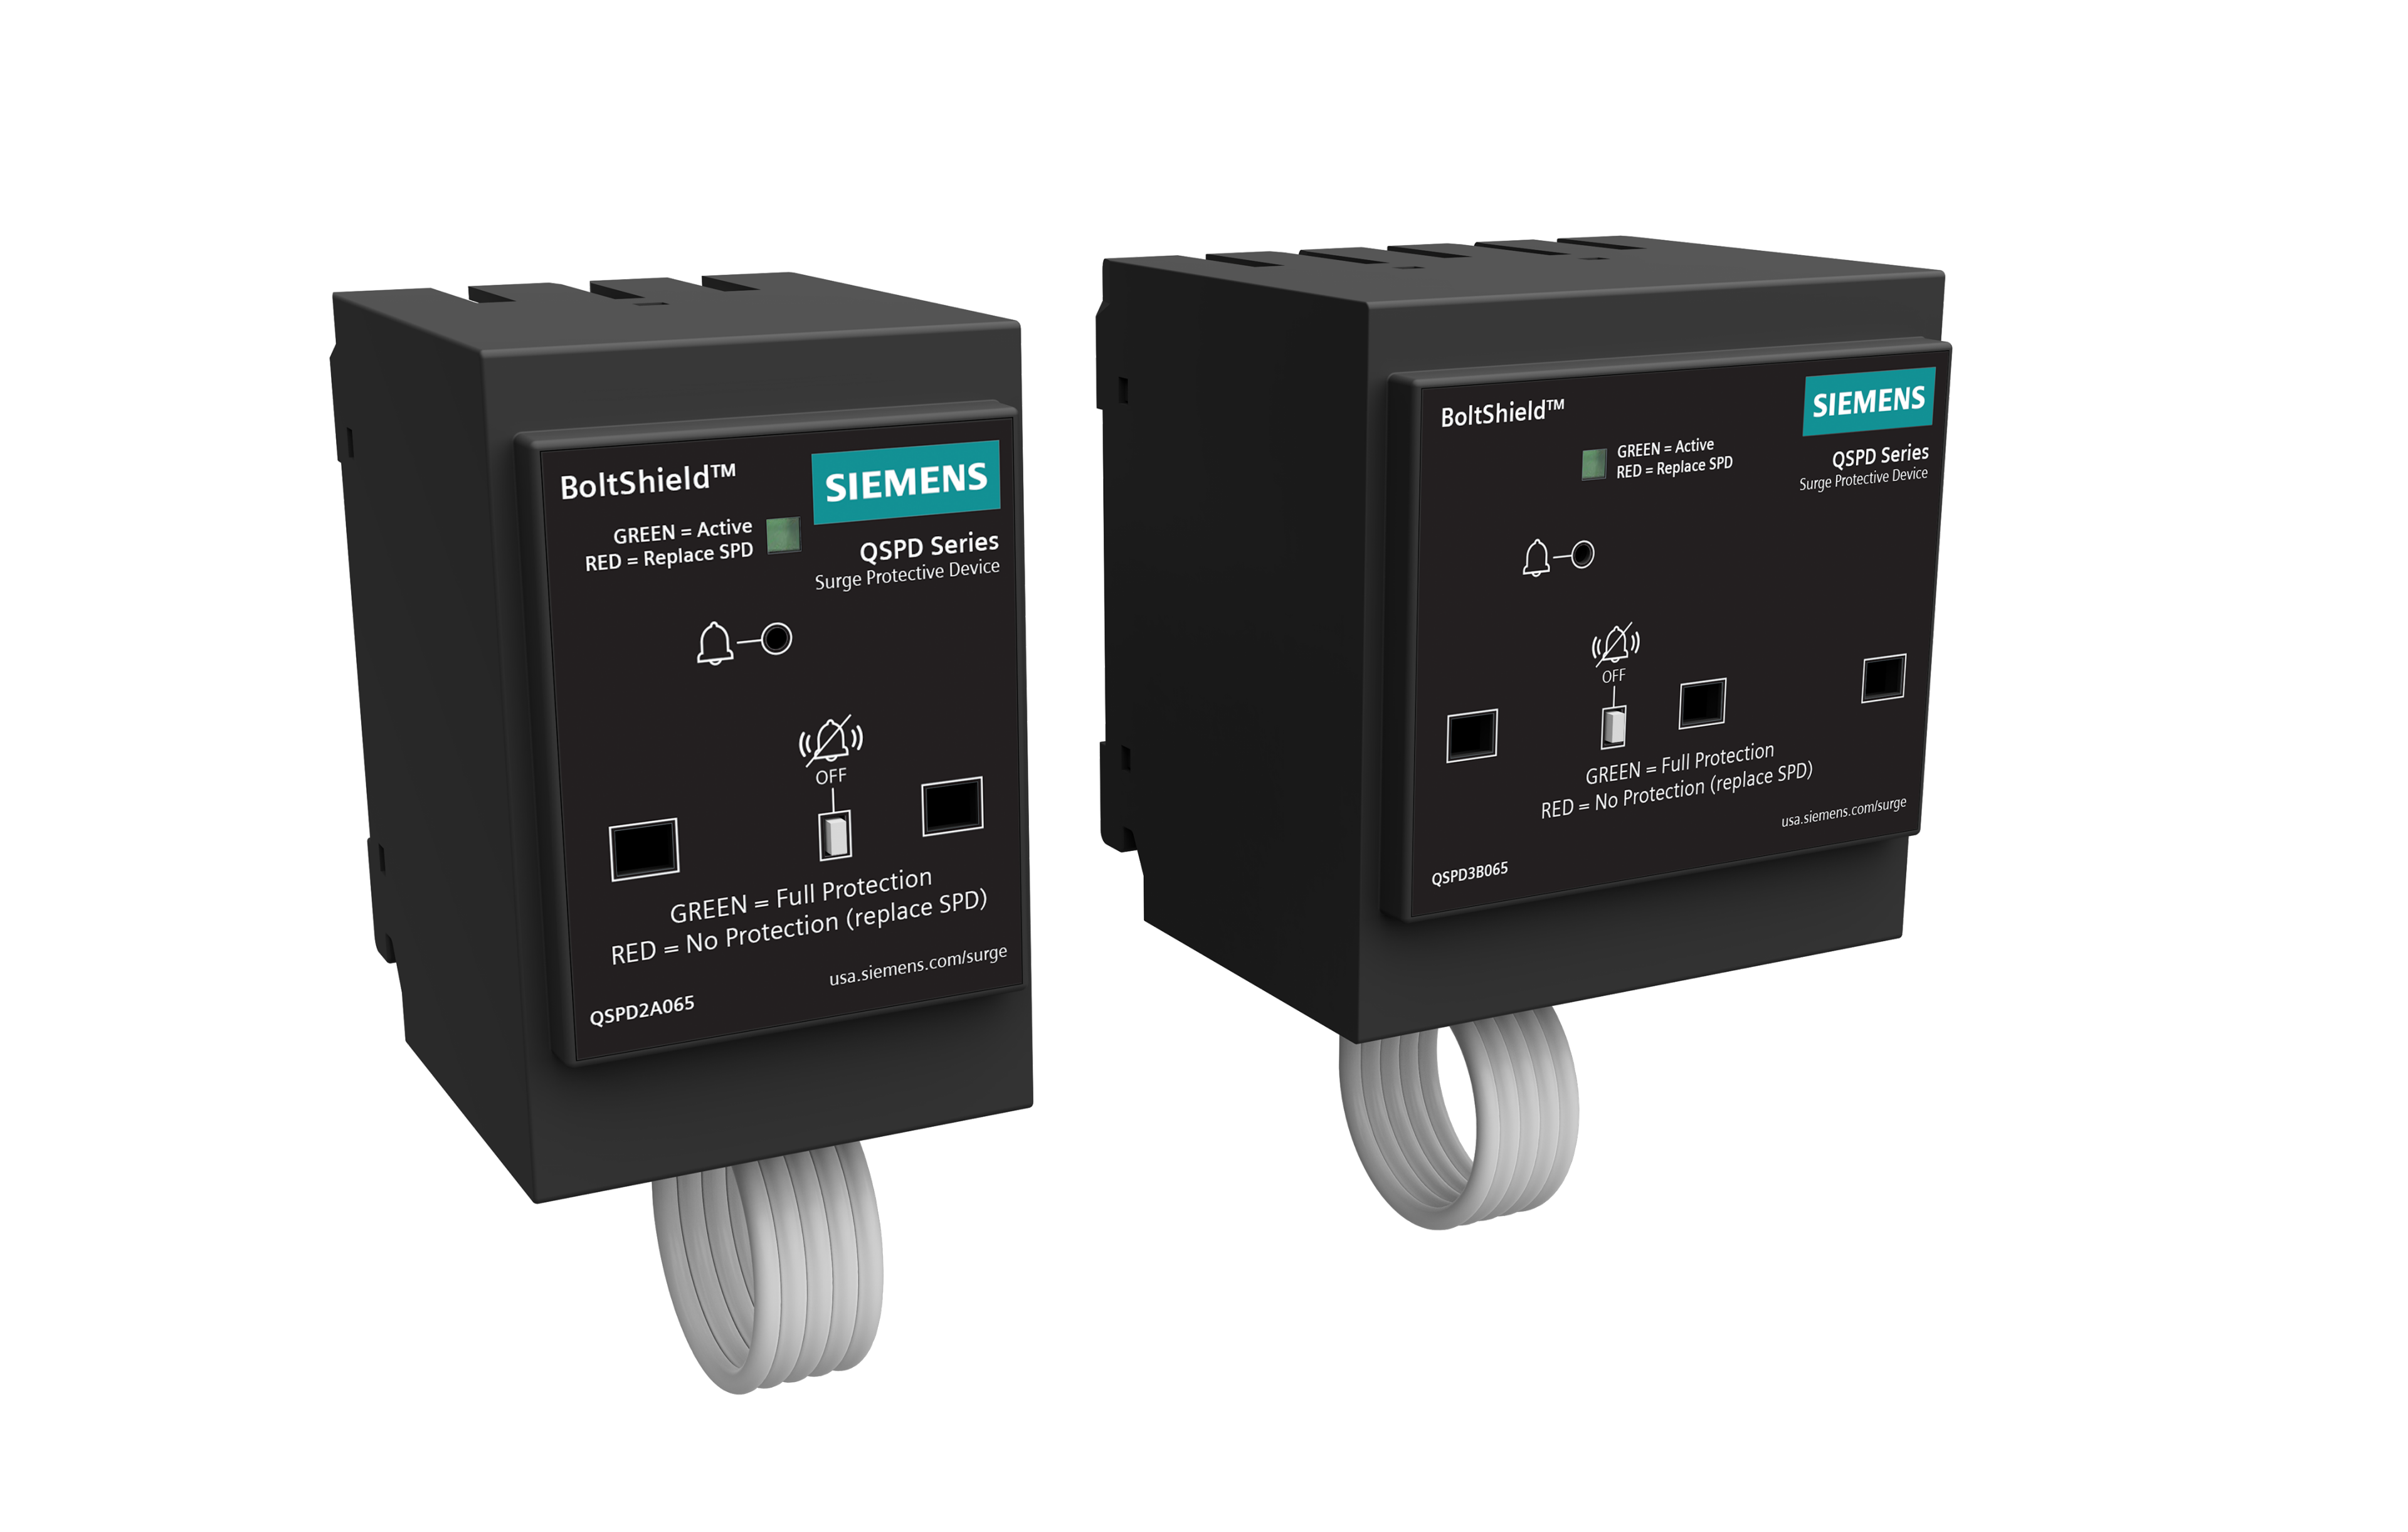 Siemens FS100 Whole House Surge Protection Device Rated for 100,000 Amps